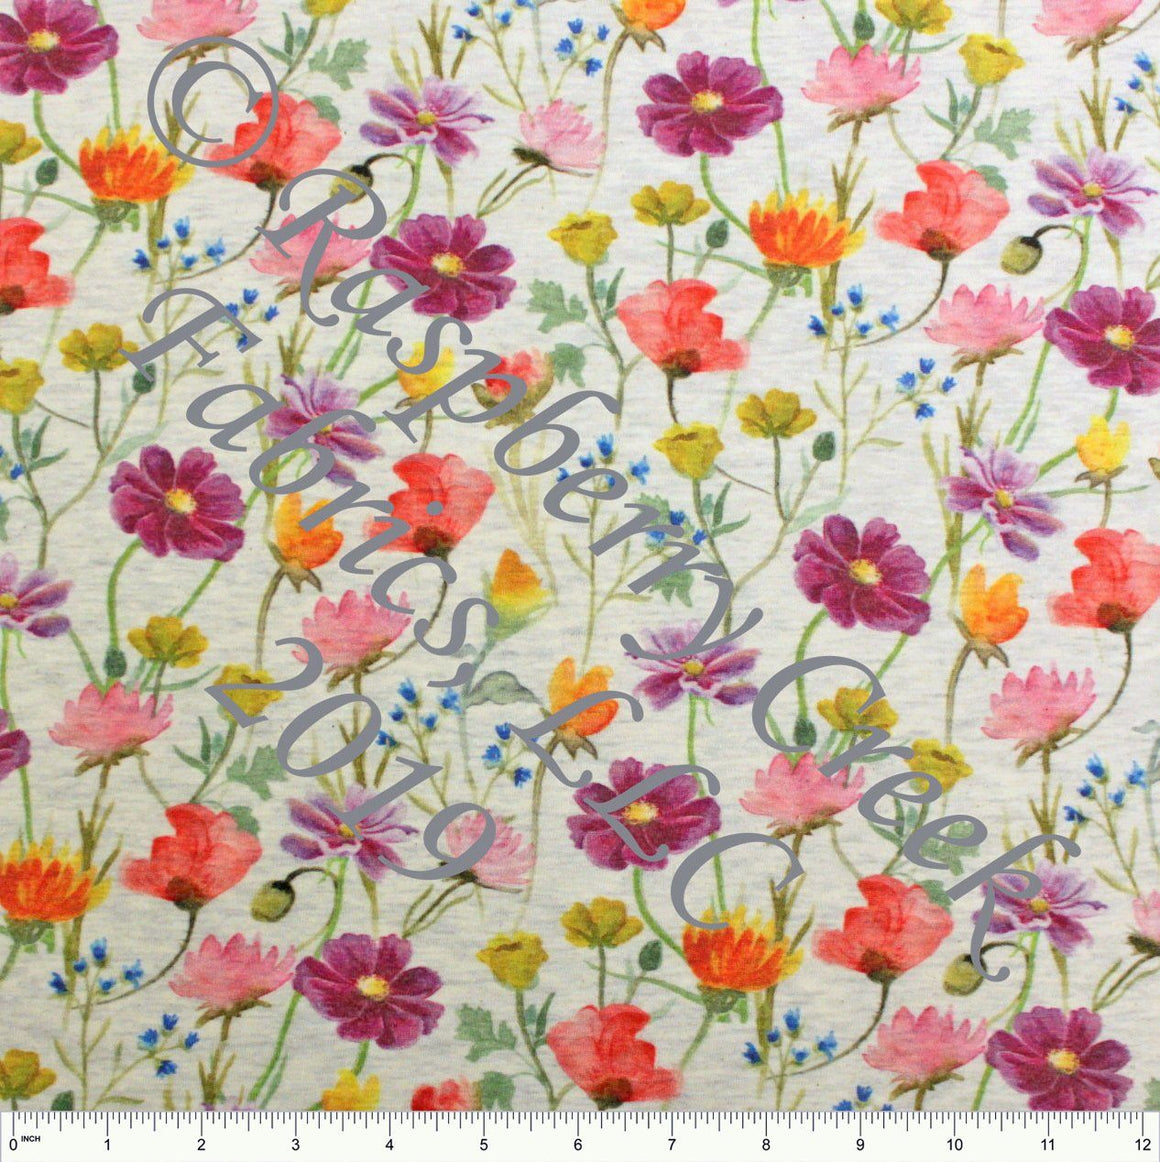 Purple Pink Orange Yellow and Green Wildflowers on Oatmeal 4 Way Stretch French Terry Knit Fabric PRE-ORDER